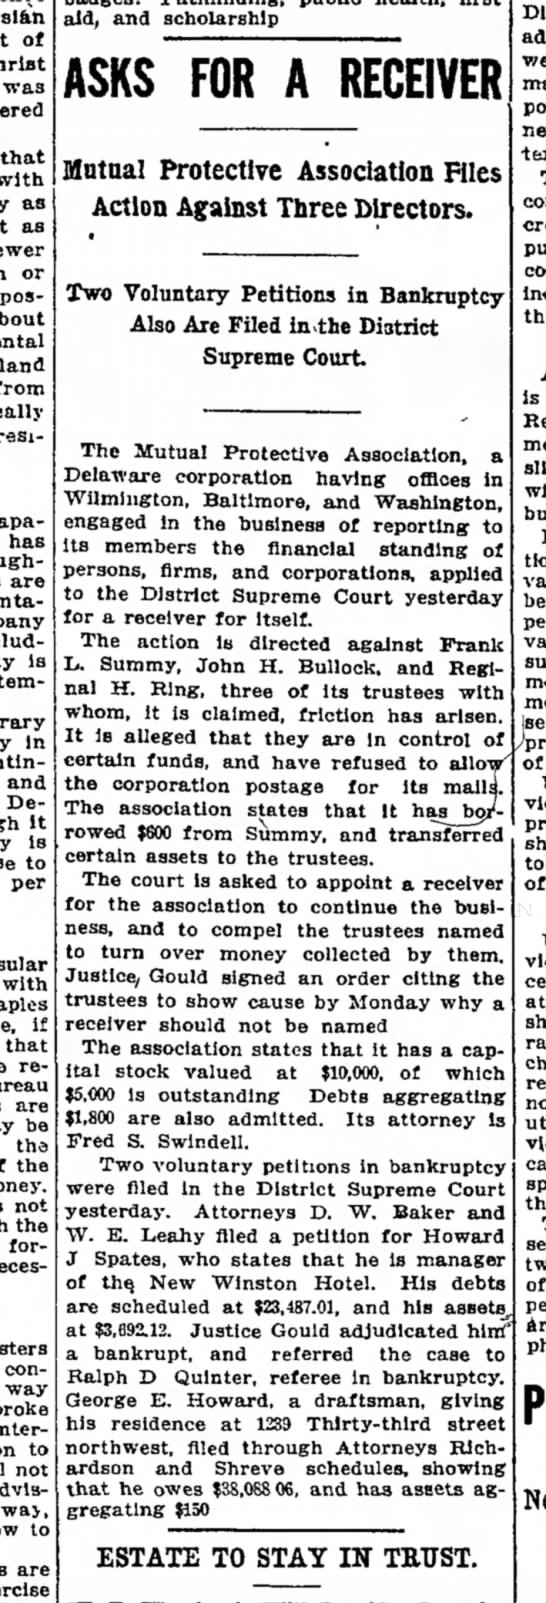 The Washington Post, 7 August 1914, Friday, Page 14: Frank L. Summy